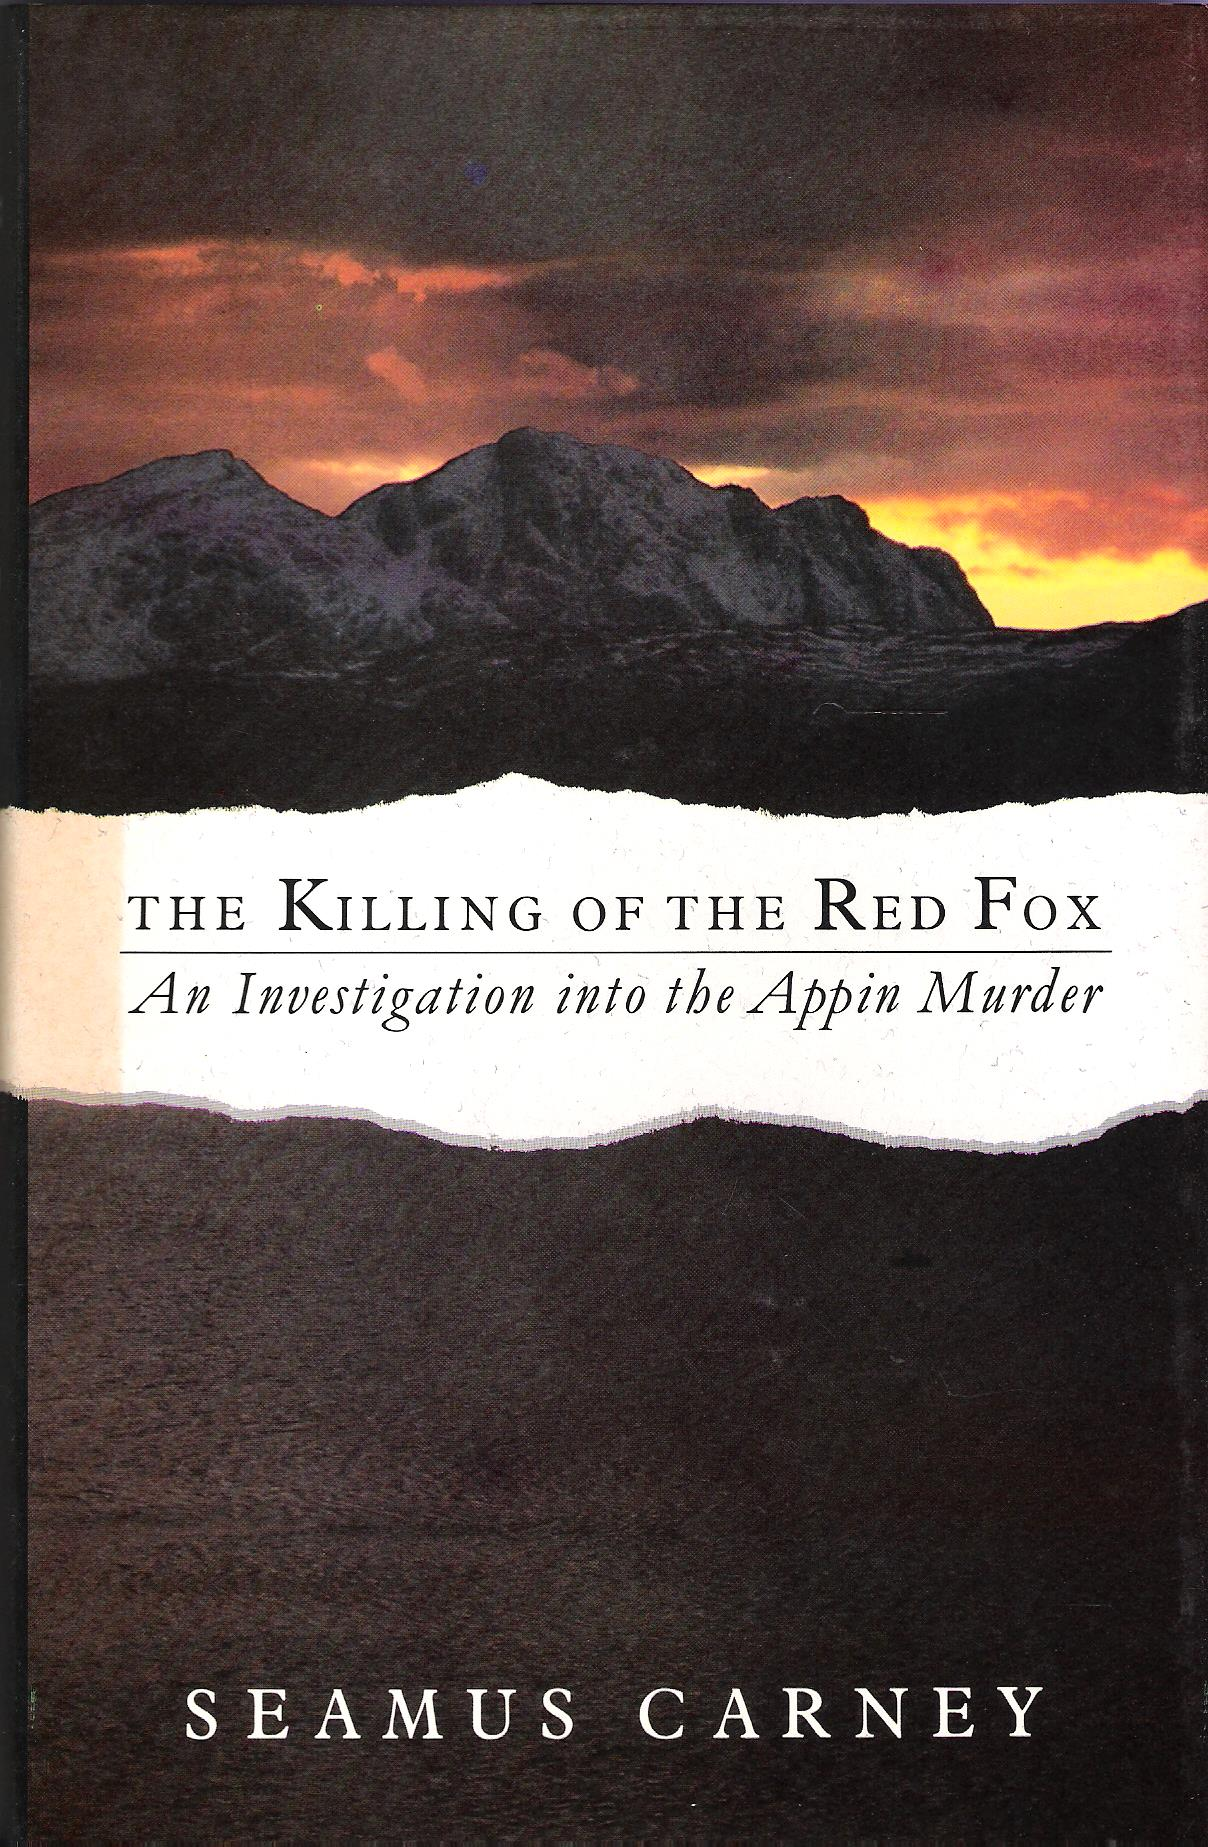 Image for The Killing of the Red Fox: An Investigation into the Appin Murder.